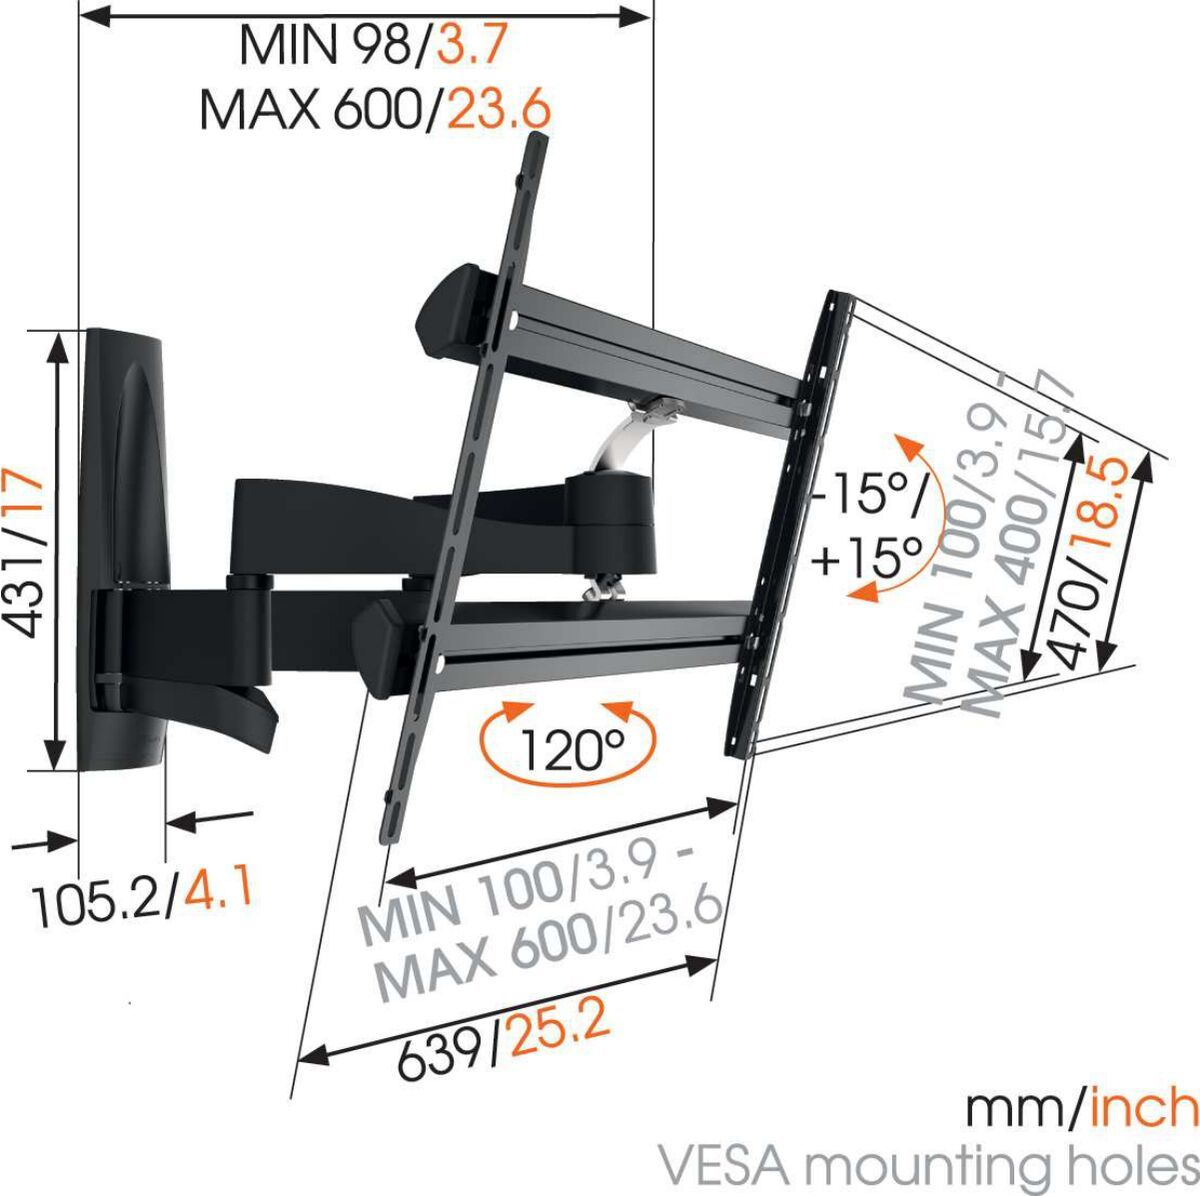 Vogel's WALL 3350 Full-Motion TV Wall Mount - Suitable for 40 up to 65 inch TVs - Forward and turning motion (up to 120°) - Tilt up to 15° - Dimensions